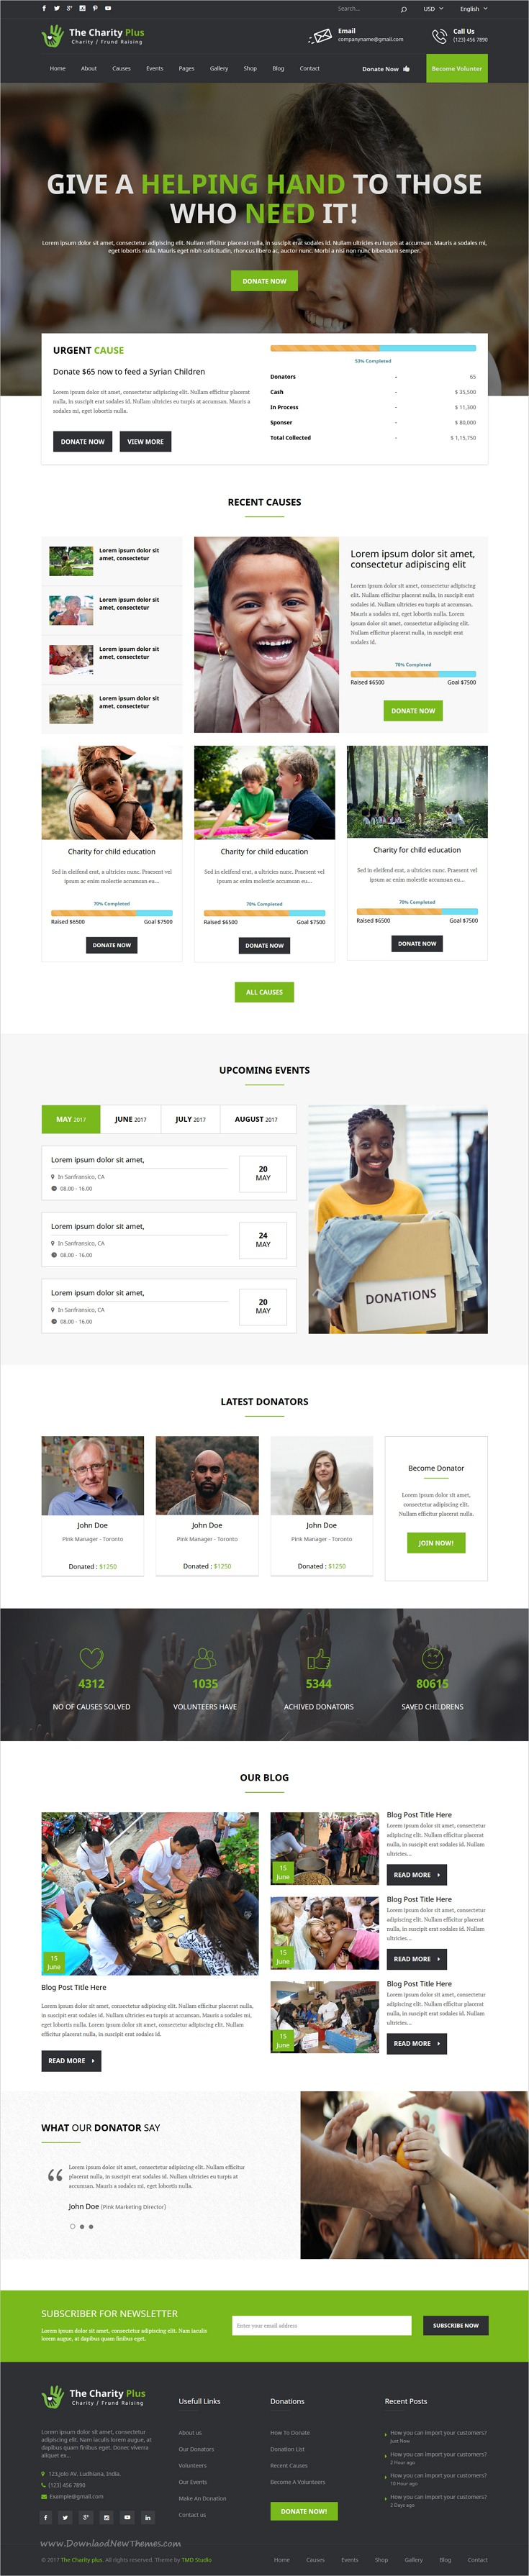 buy charity non profit organization psd template by tmdstudio on themeforest charity non profit organization psd template have elegant and modern